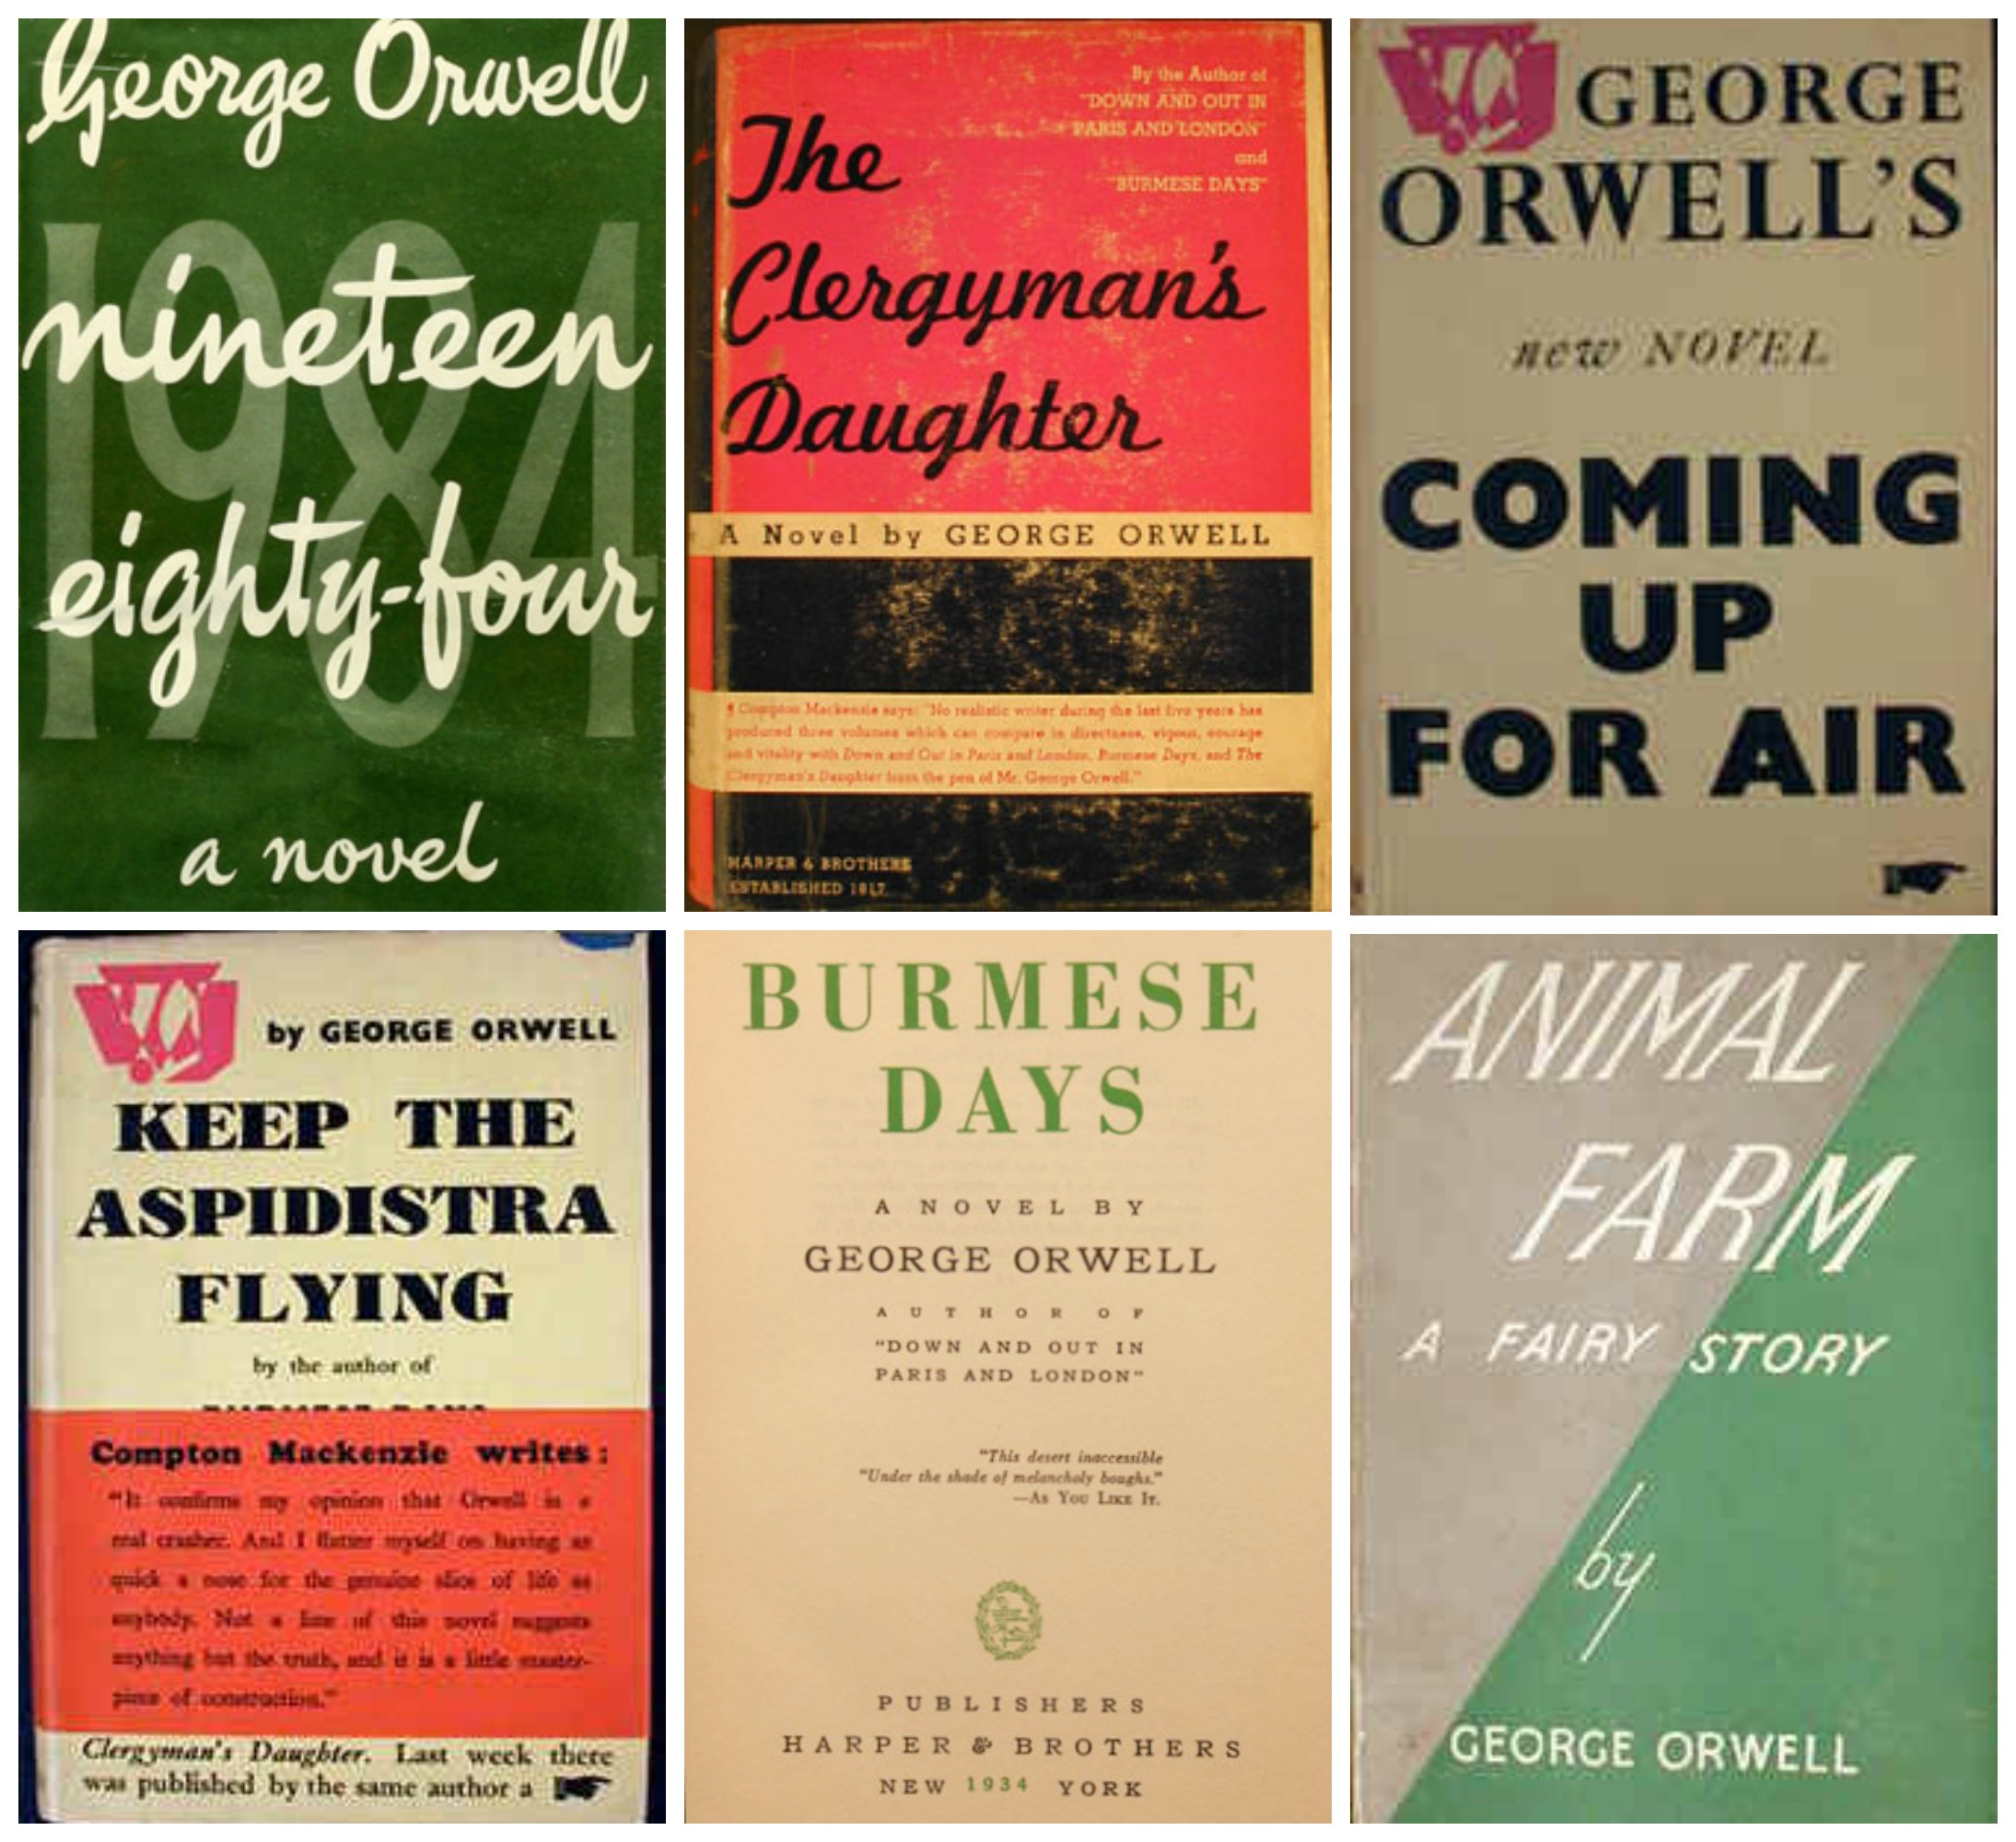 george orwell ebooks collection aerogramme writers studiogeorge george orwell ebooks collection aerogramme writers studiogeorge orwell ebooks collection aerogramme writers studio